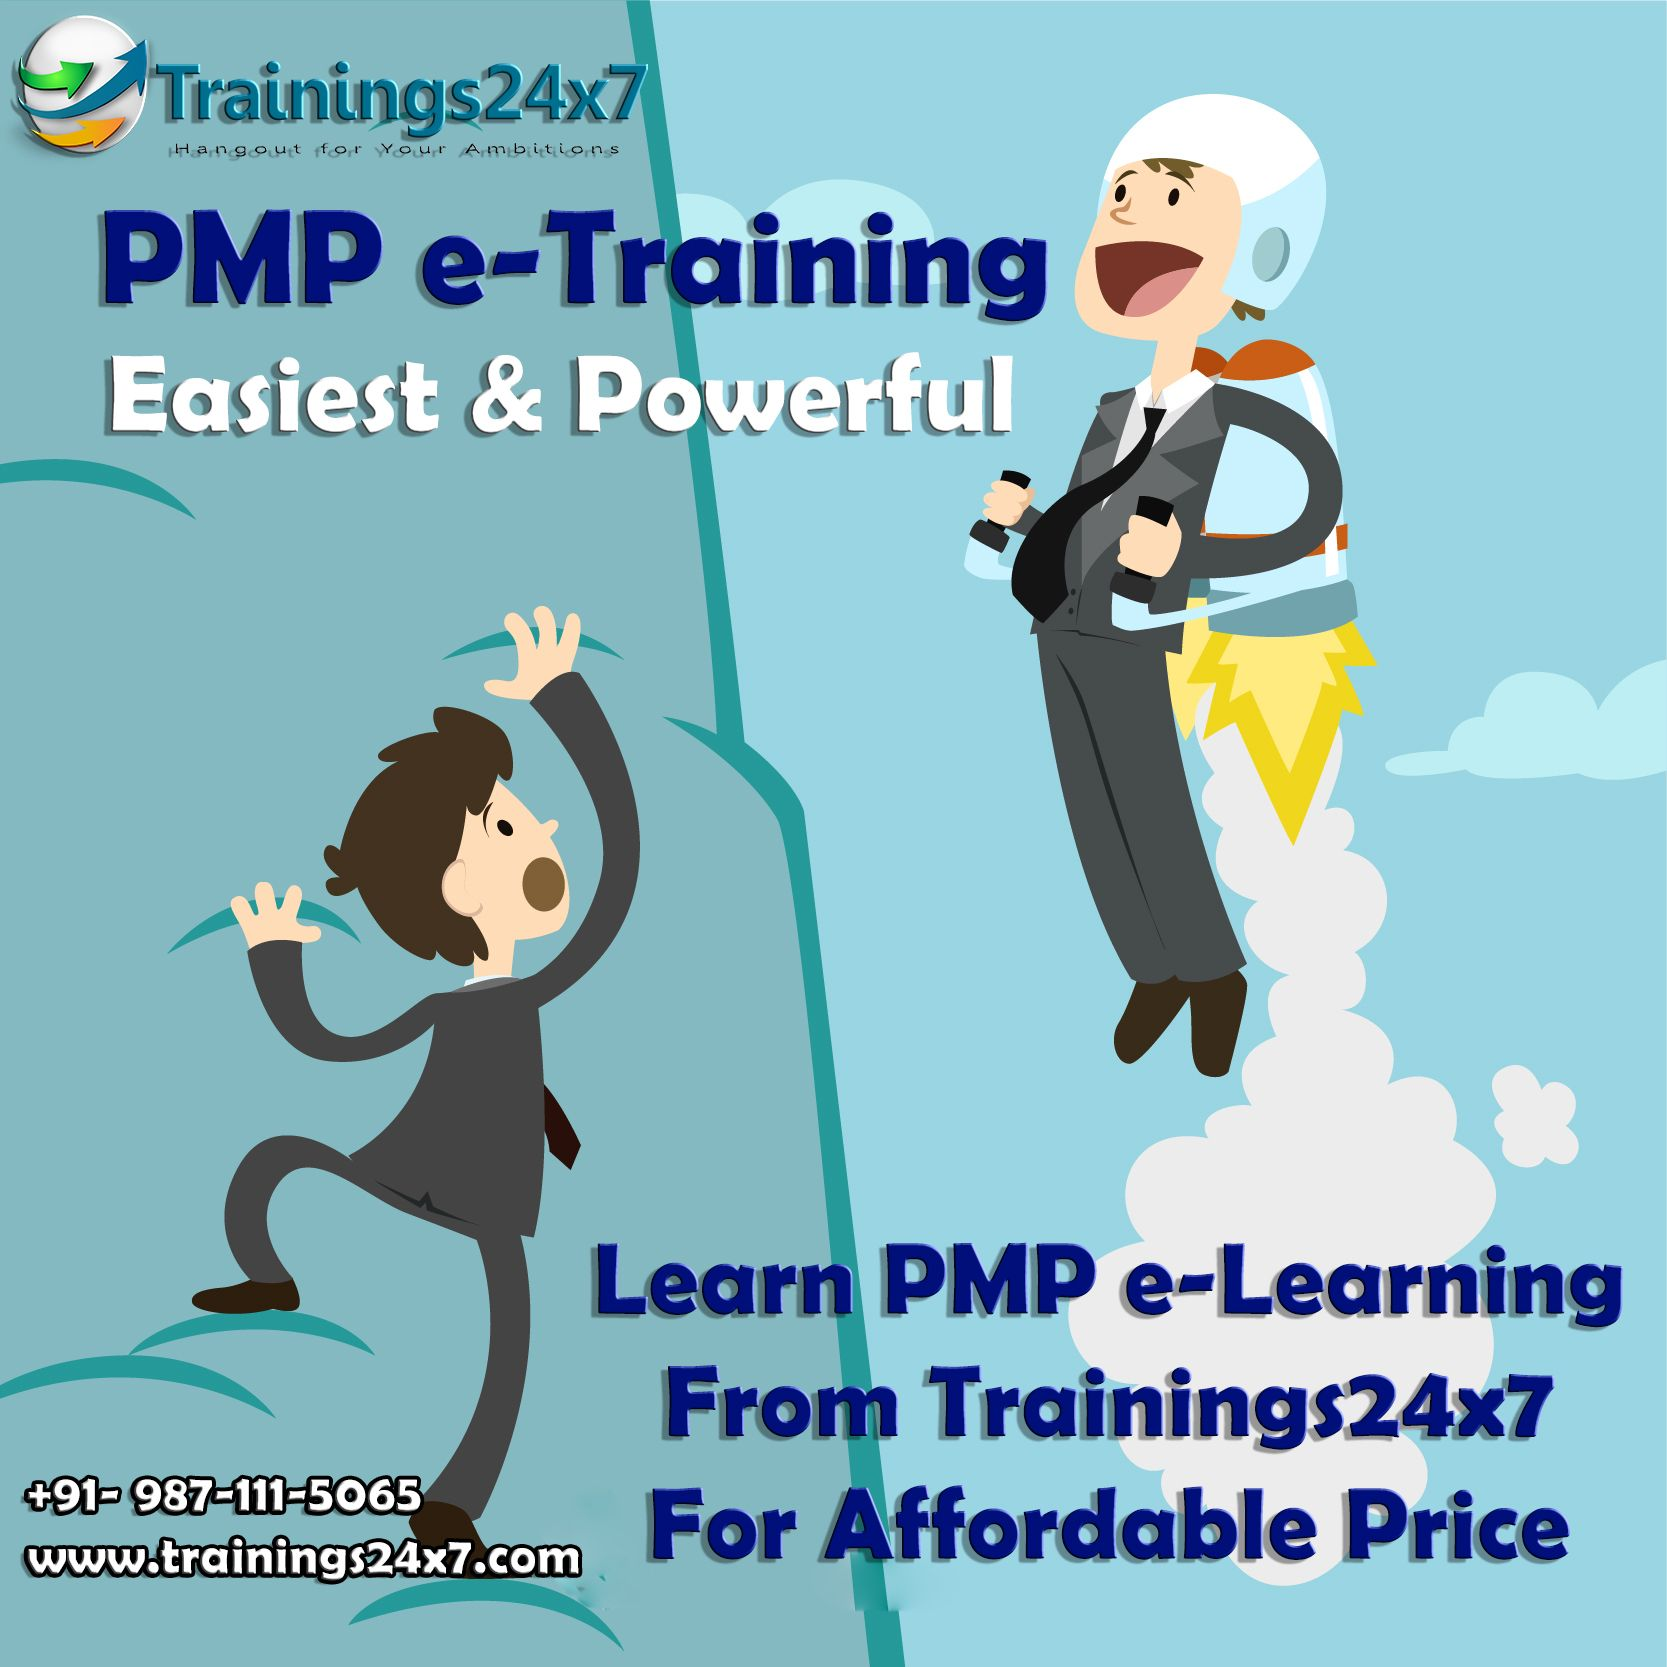 What is pmp certification exam pmp stands for project management what is pmp certification exam pmp stands for project management professional certification exam 1betcityfo Gallery